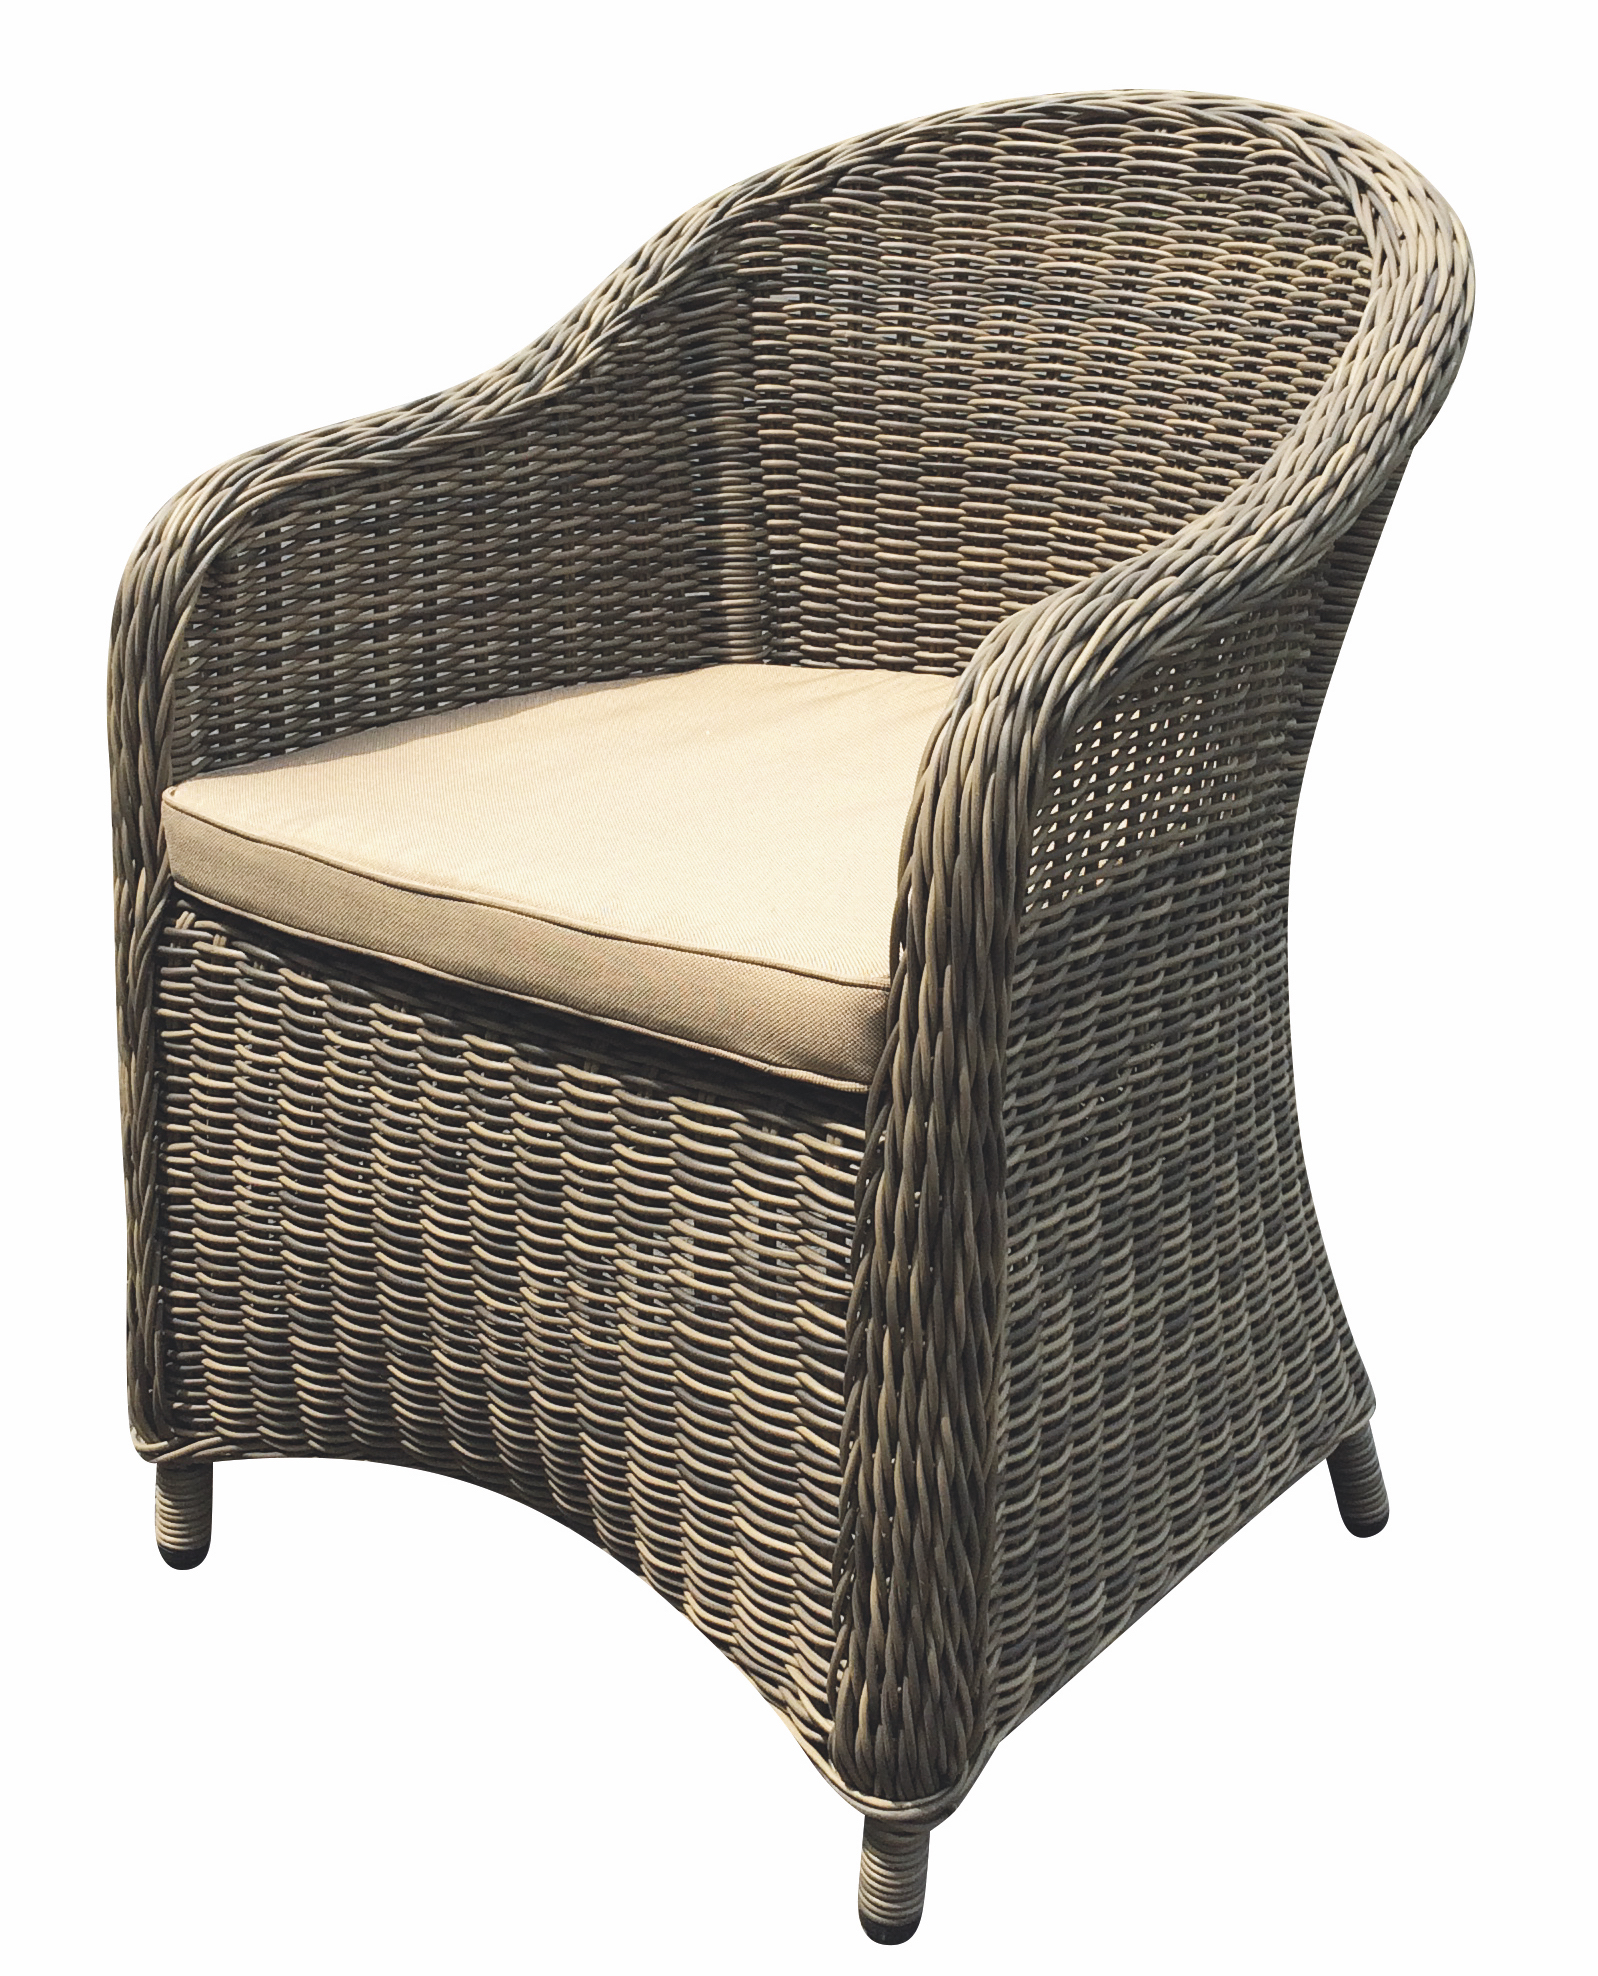 Modern Aluminum Wicker Dining Chair Contract Furniture ...